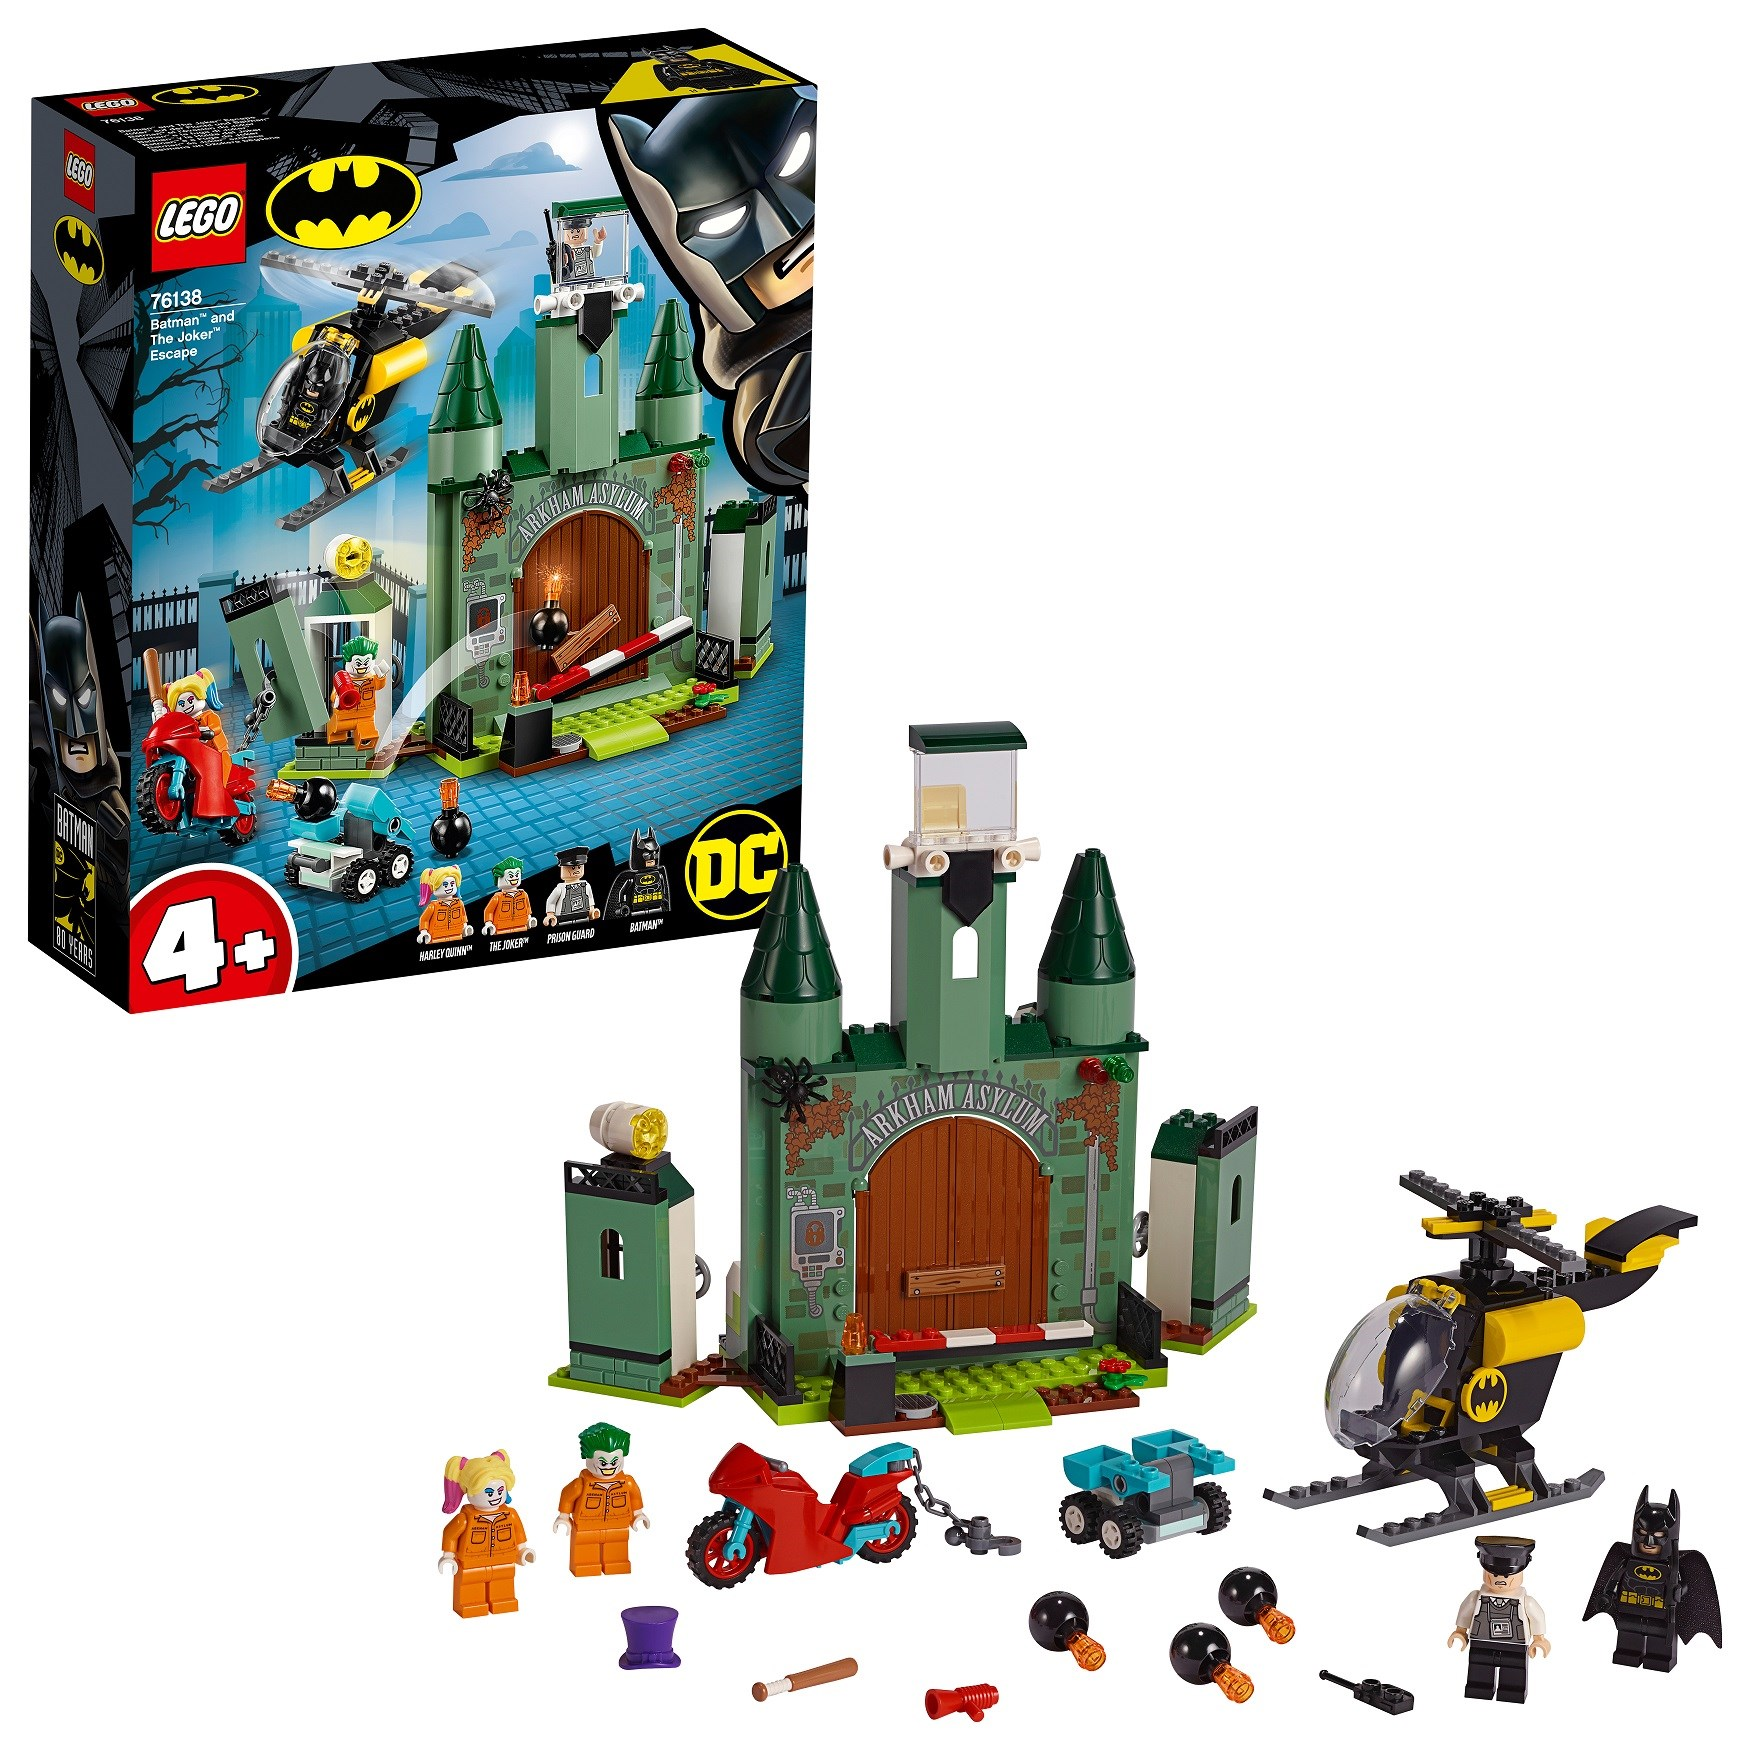 Designer Lego DC Comics Super Heroes 76138 Batman And Joker Escape